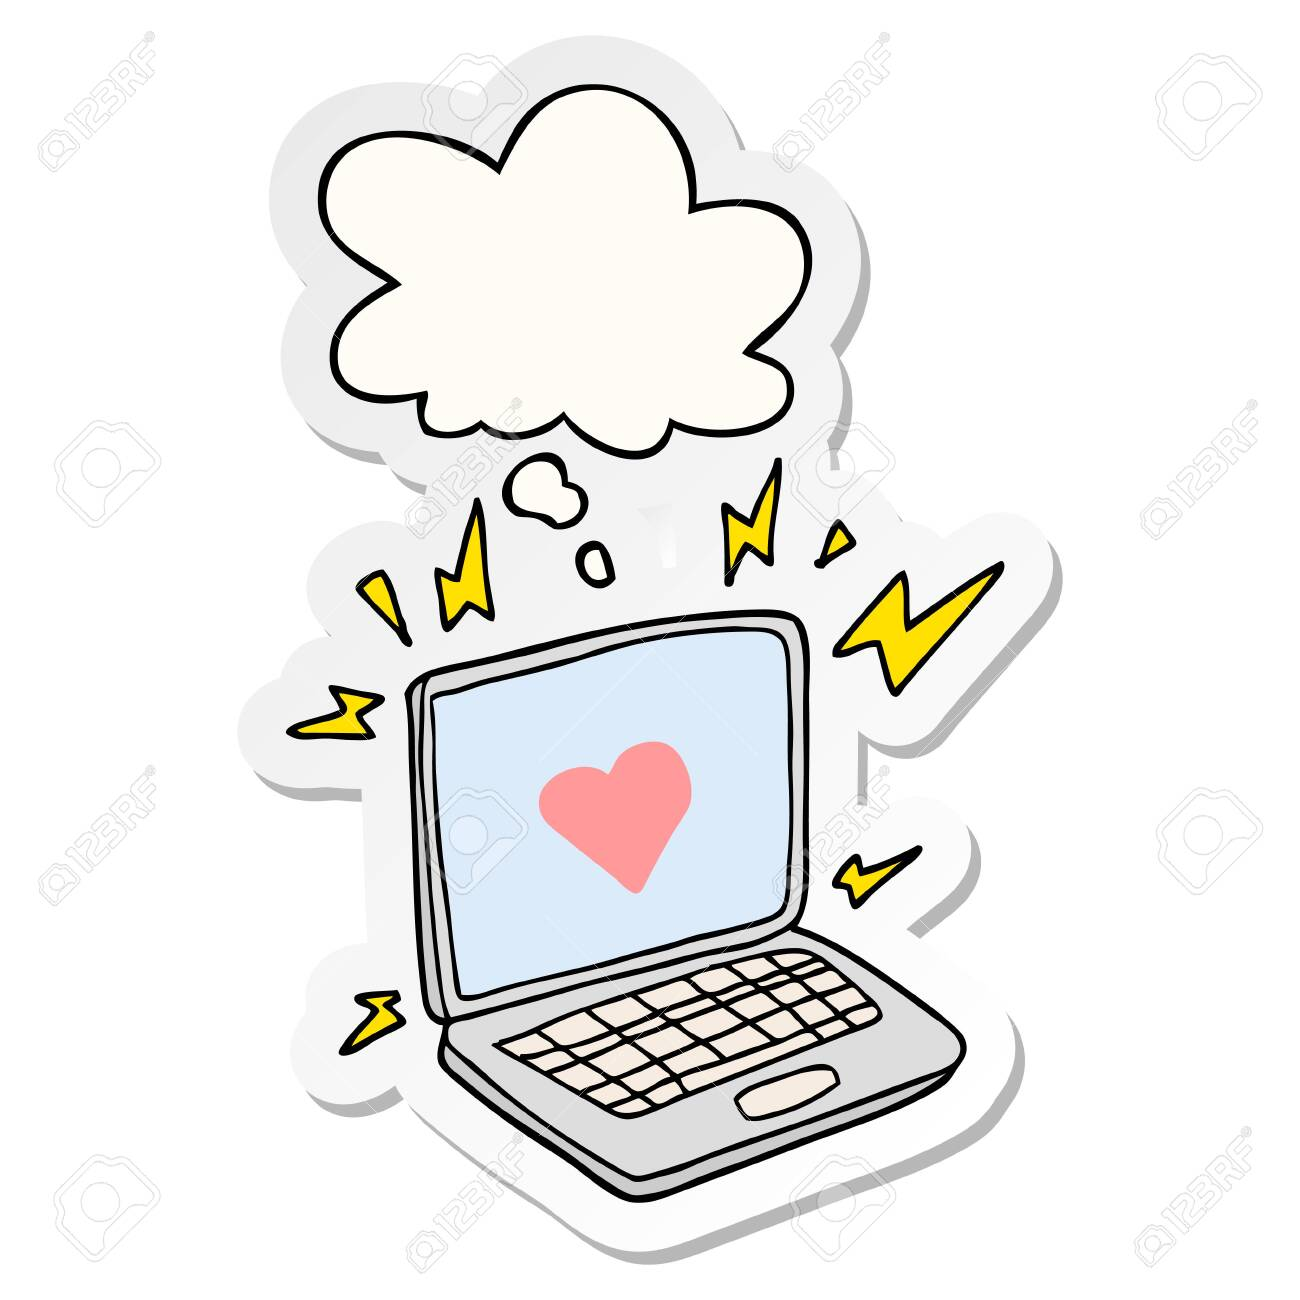 internet dating cartoon with thought bubble as a printed sticker - 129874147